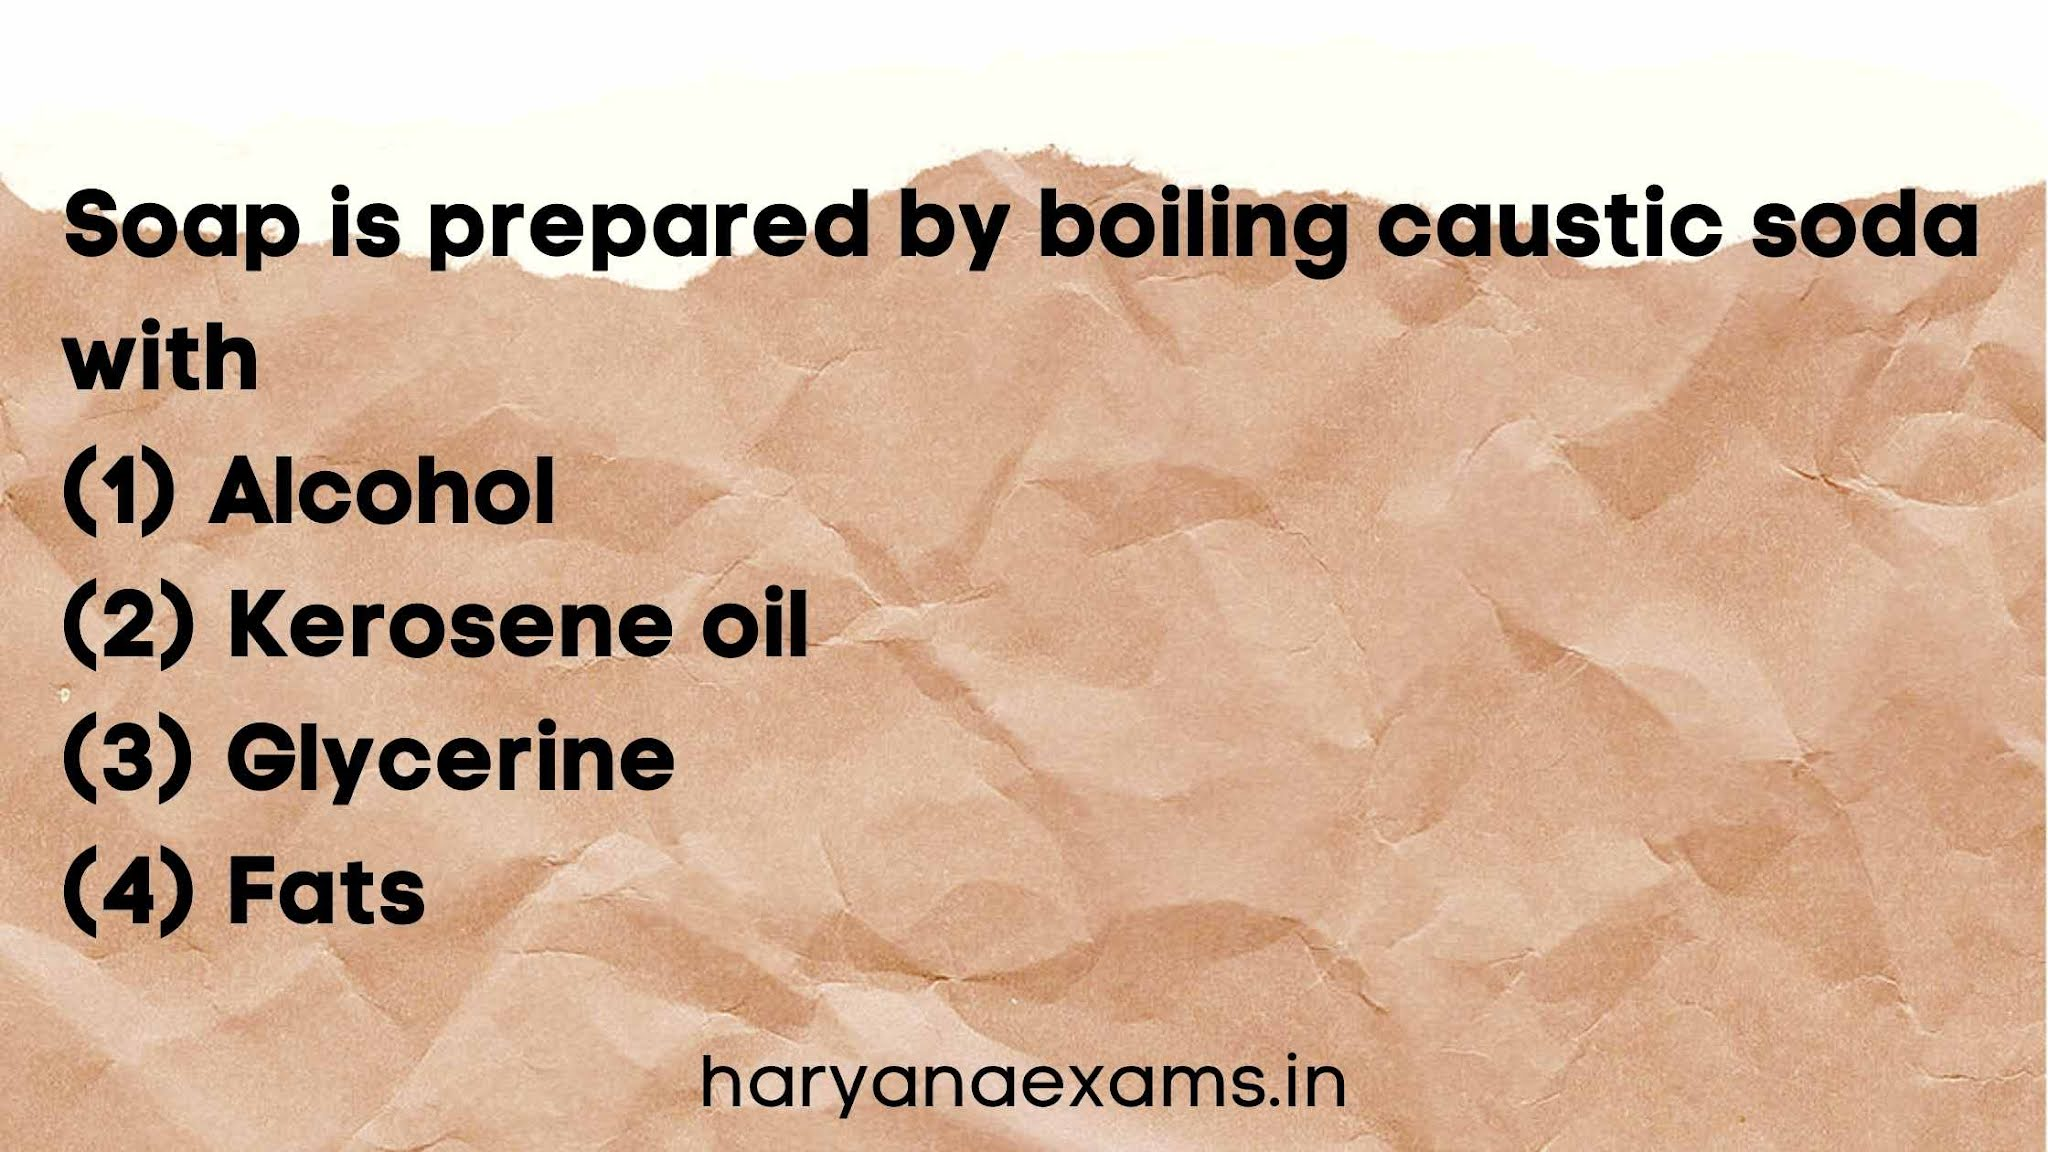 Soap is prepared by boiling caustic soda with   (1) Alcohol   (2) Kerosene oil   (3) Glycerine   (4) Fats